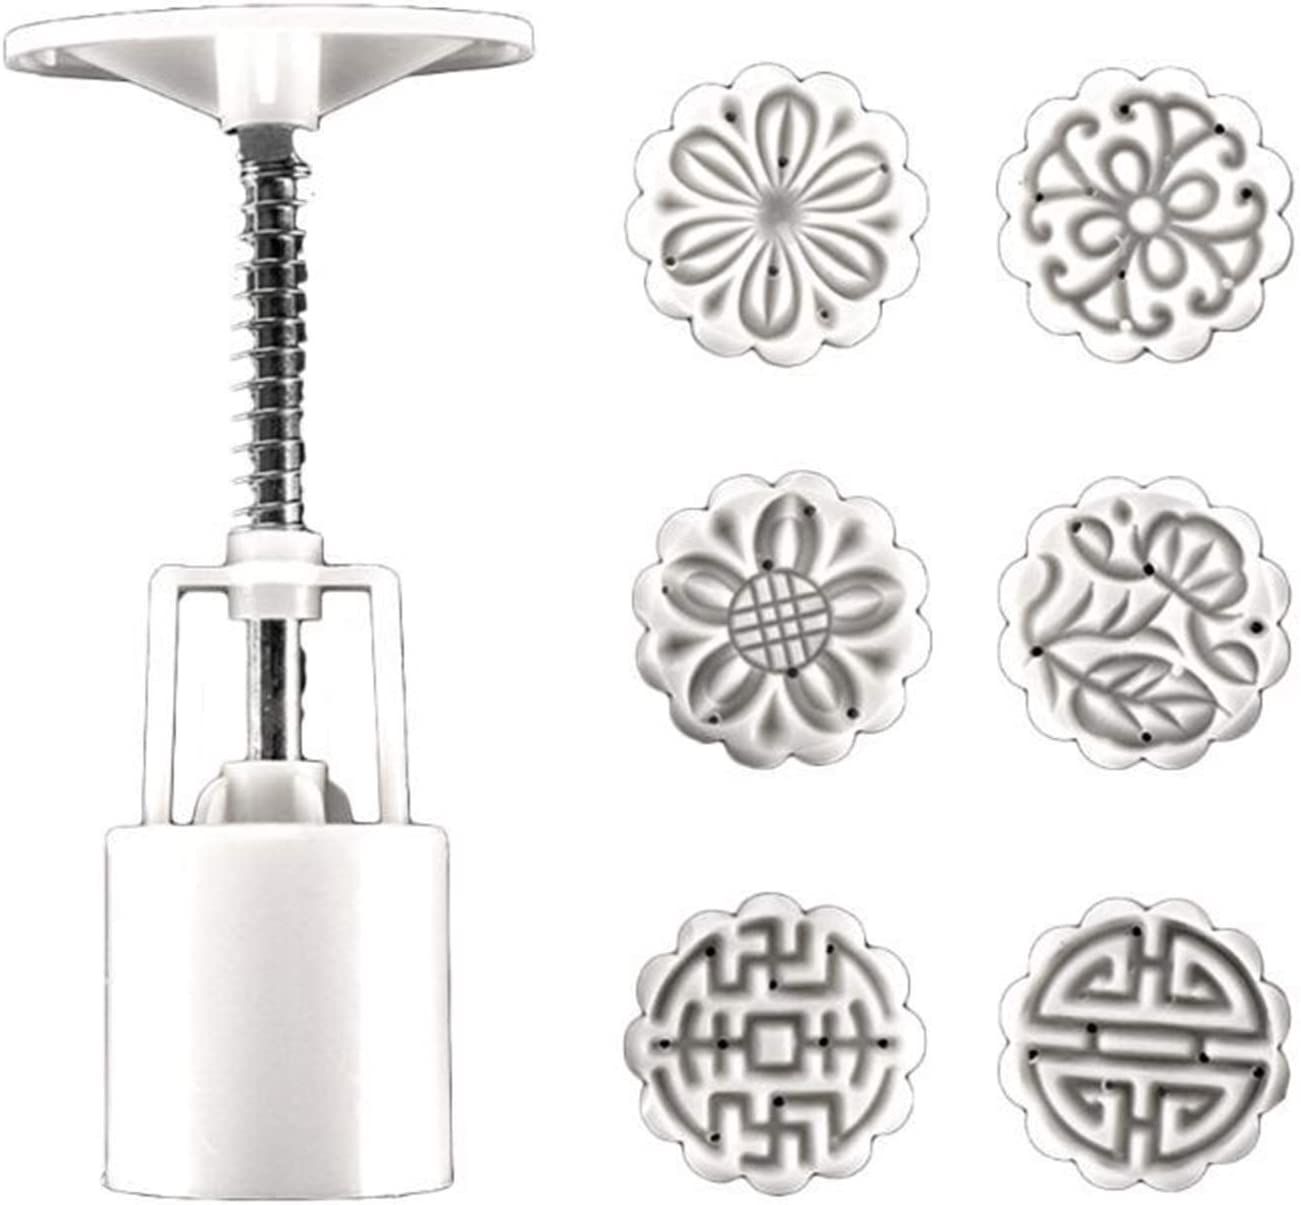 25g 50g 100g 150g Mooncake Barrel Ha With SALENEW very popular! 4pcs Mold Stamps Max 47% OFF Fruit